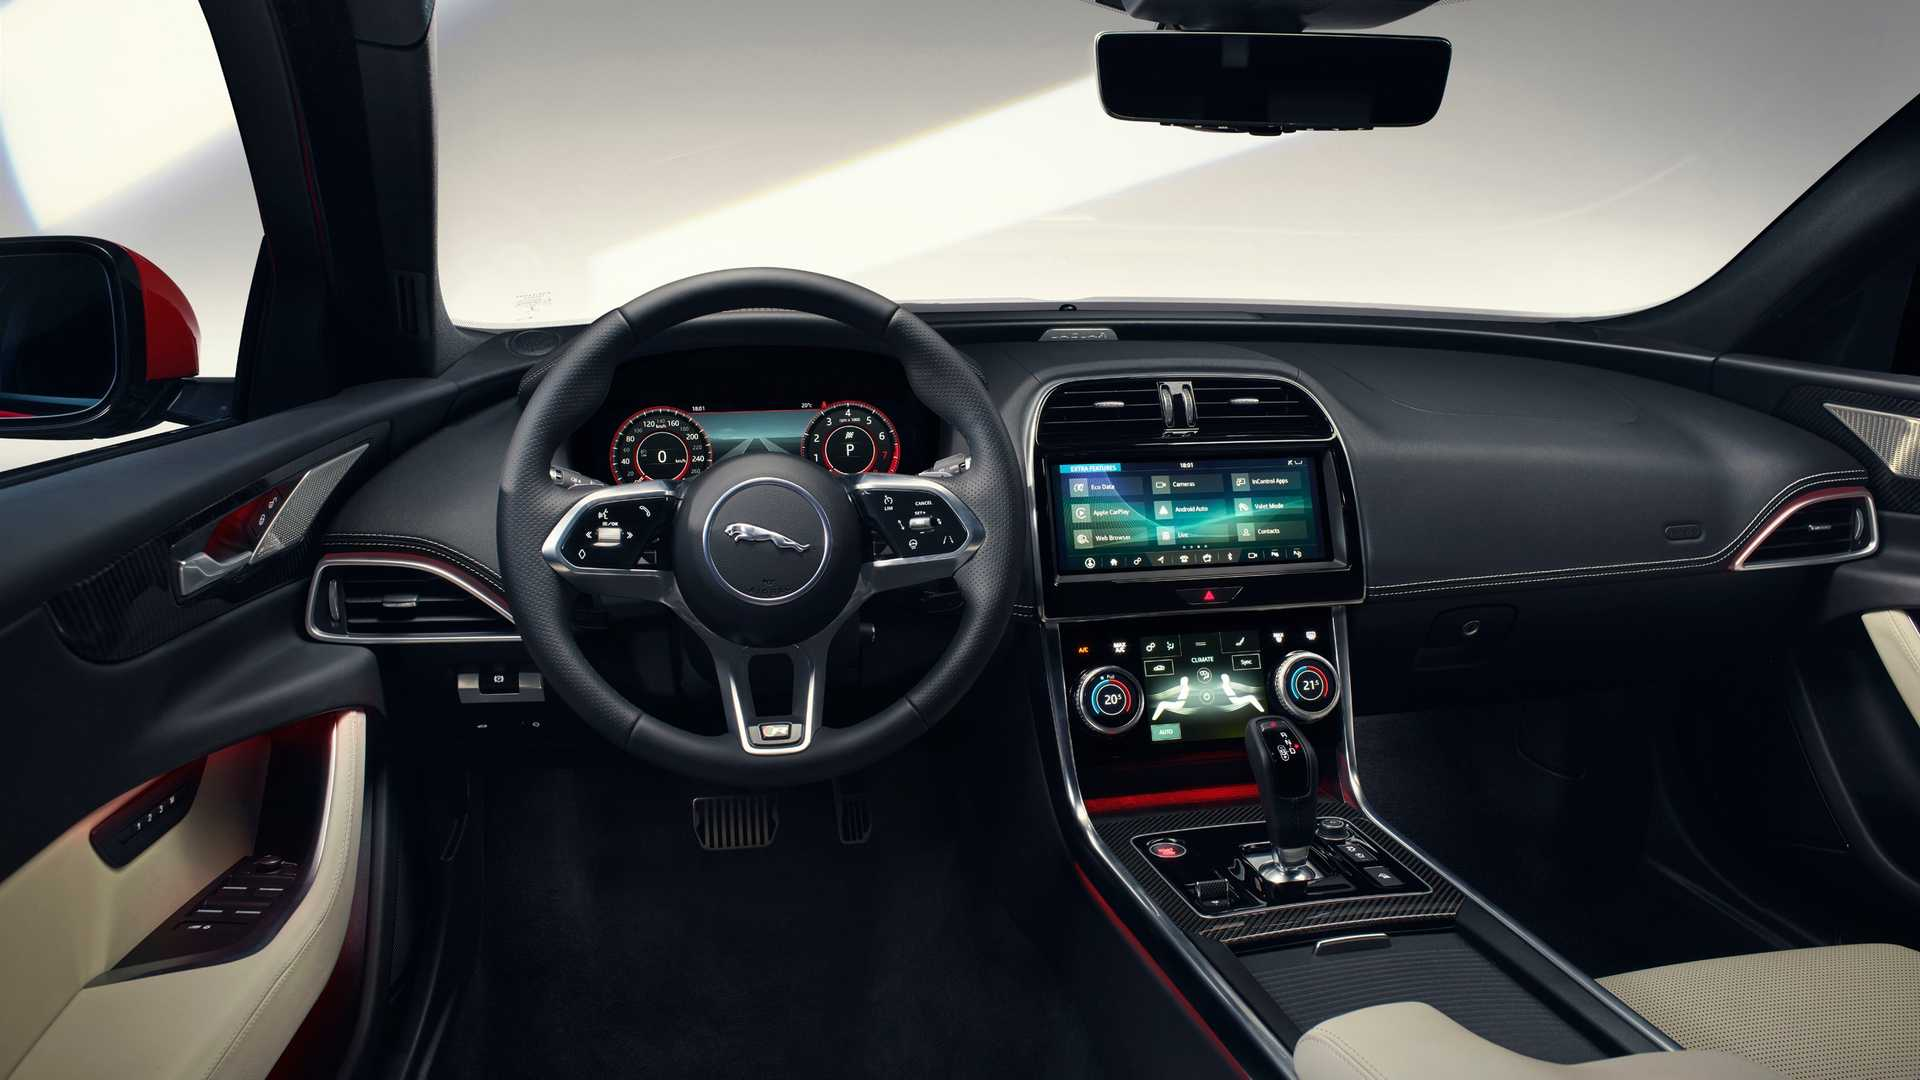 94 The New Jaguar Xe 2020 Interior Ratings with New Jaguar Xe 2020 Interior